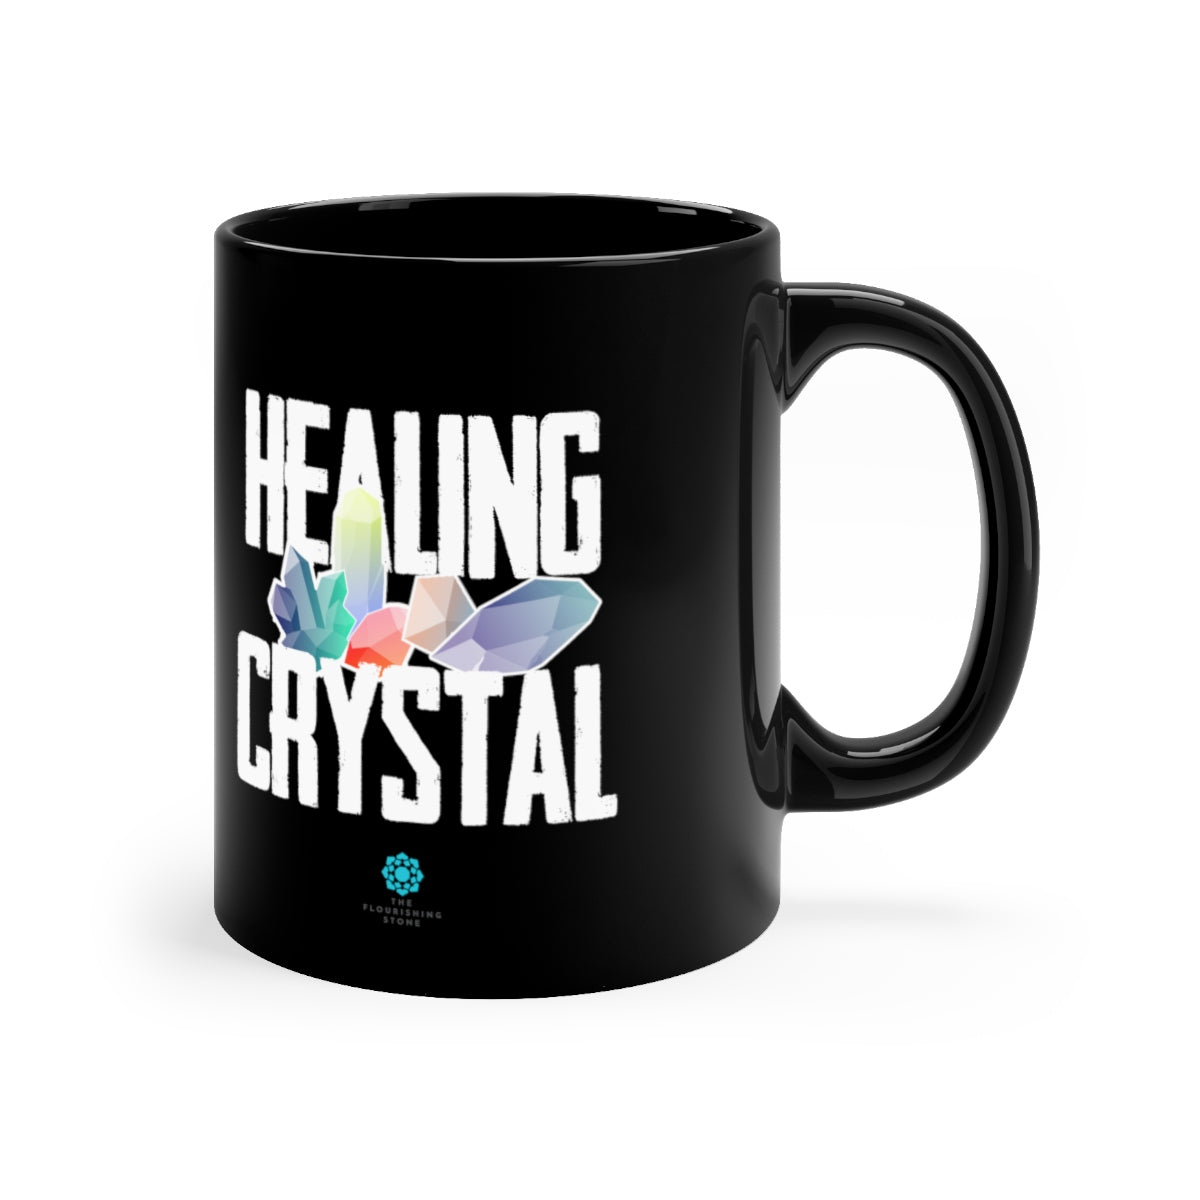 Healing Crystal Everyday Black mug